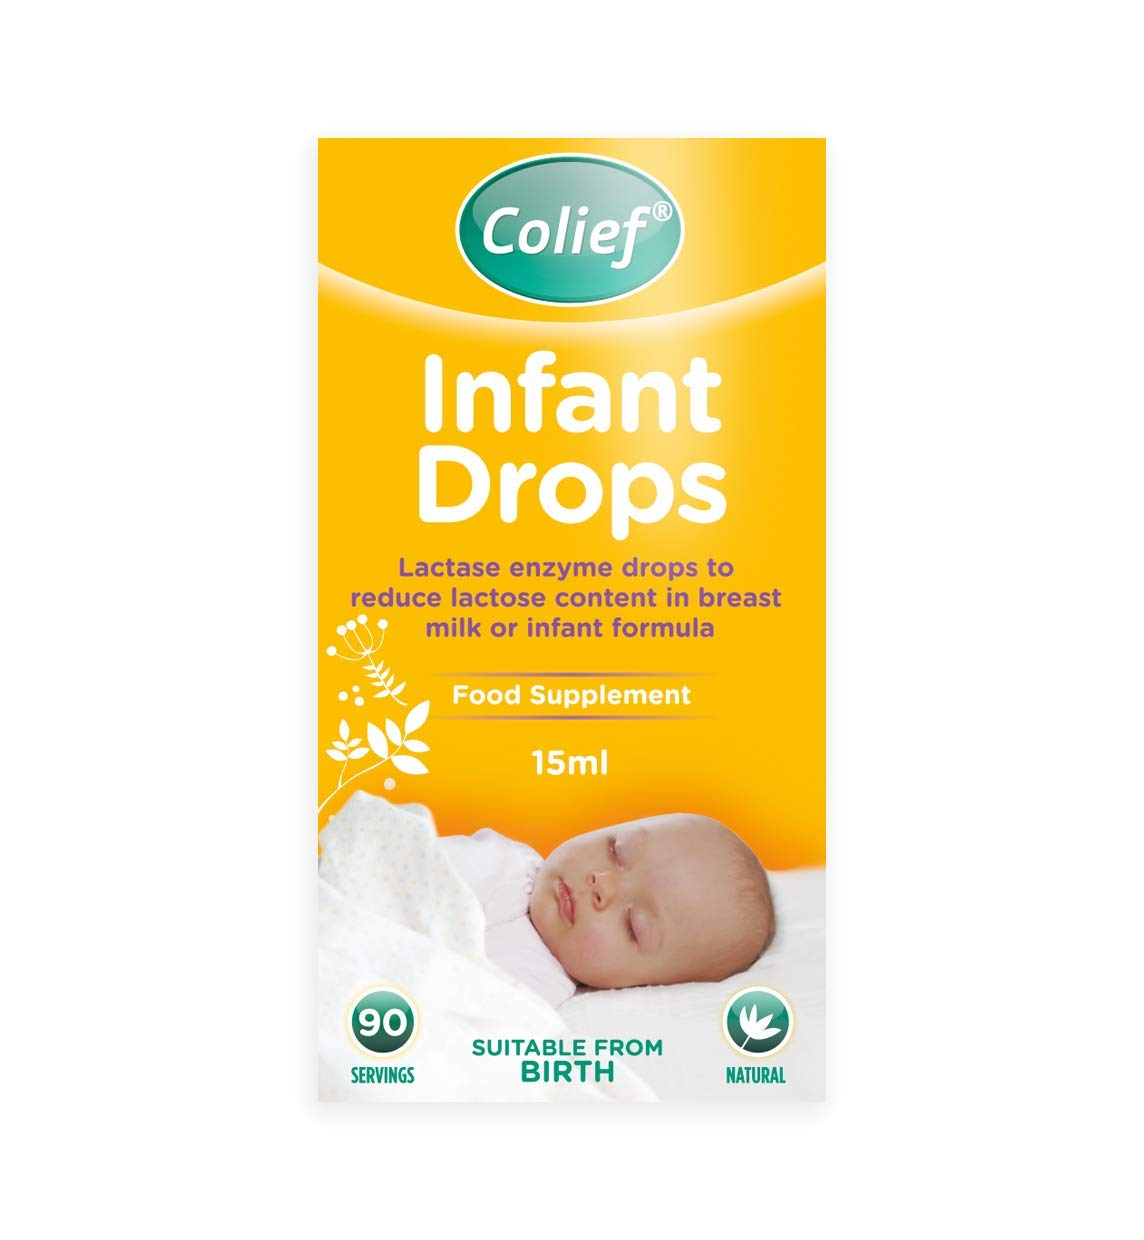 Colief Infant Drops   Lactase Enzyme Drops   Natural Colic Relief for Babies   Reduces Bloating, Wind and Crying  15ml